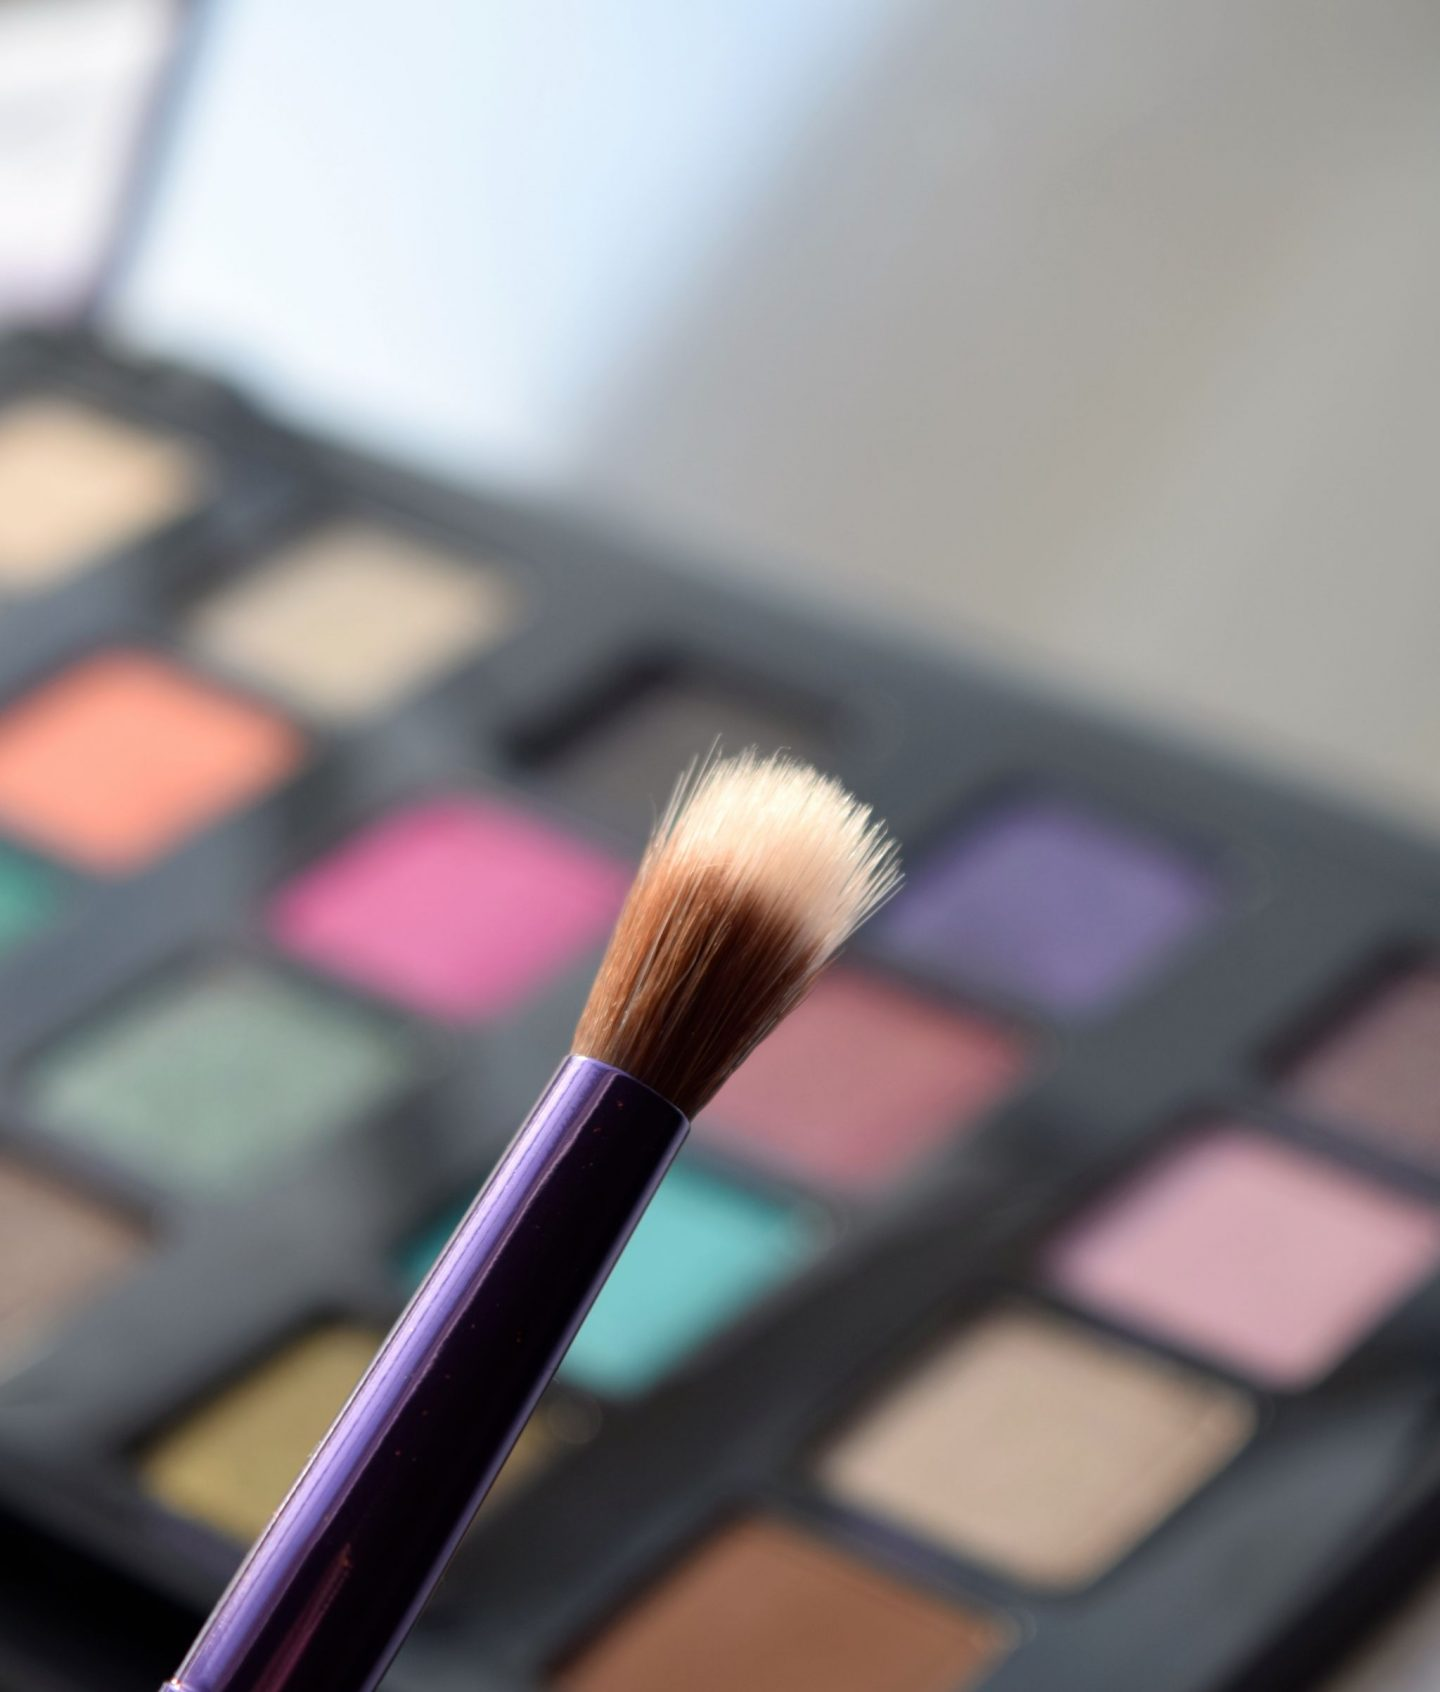 Urban Decay Vice 4 Palette brush